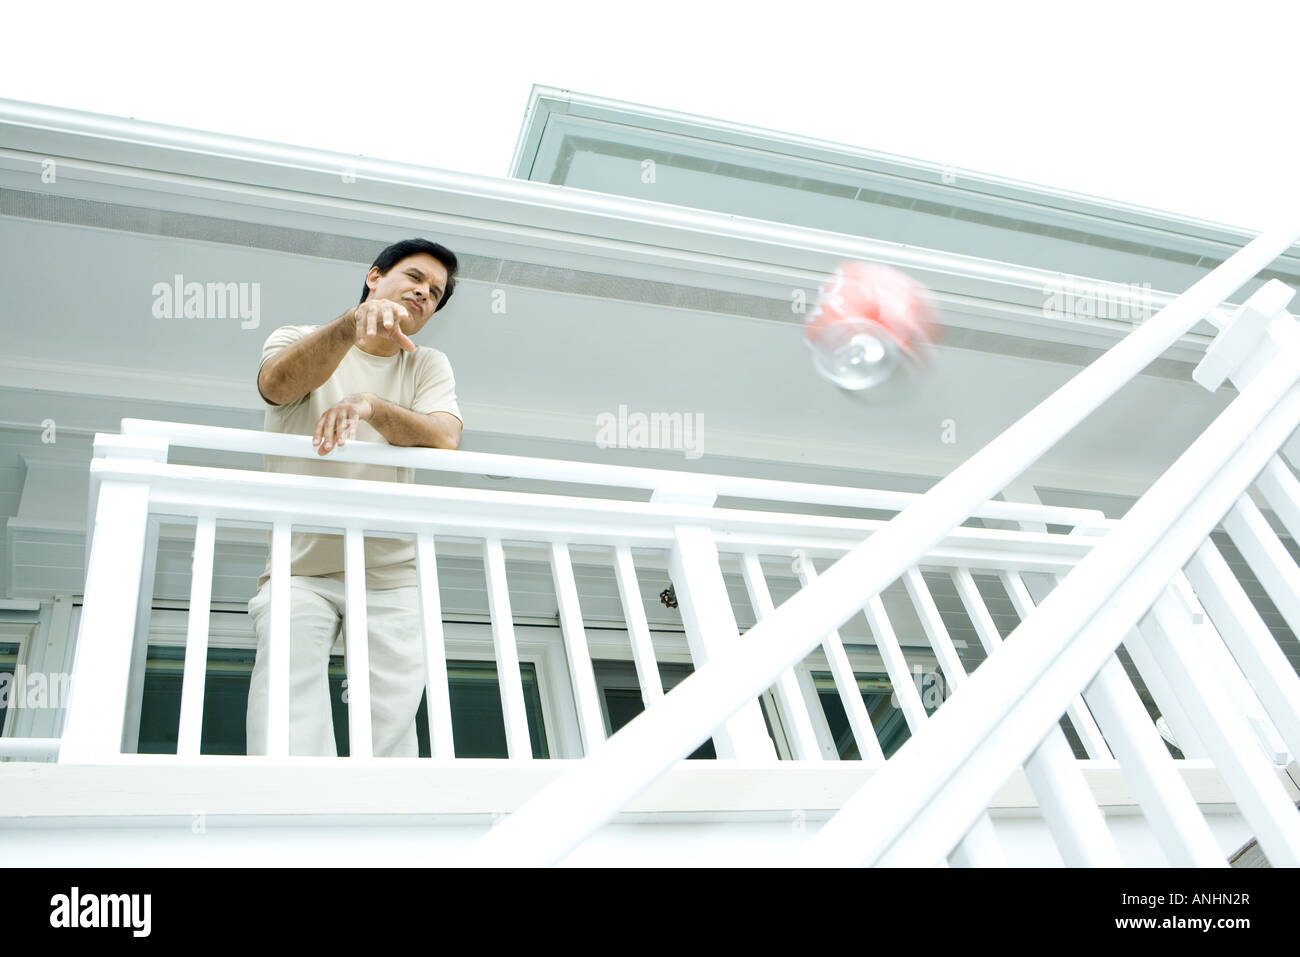 Man throwing drink can from deck, low angle view - Stock Image